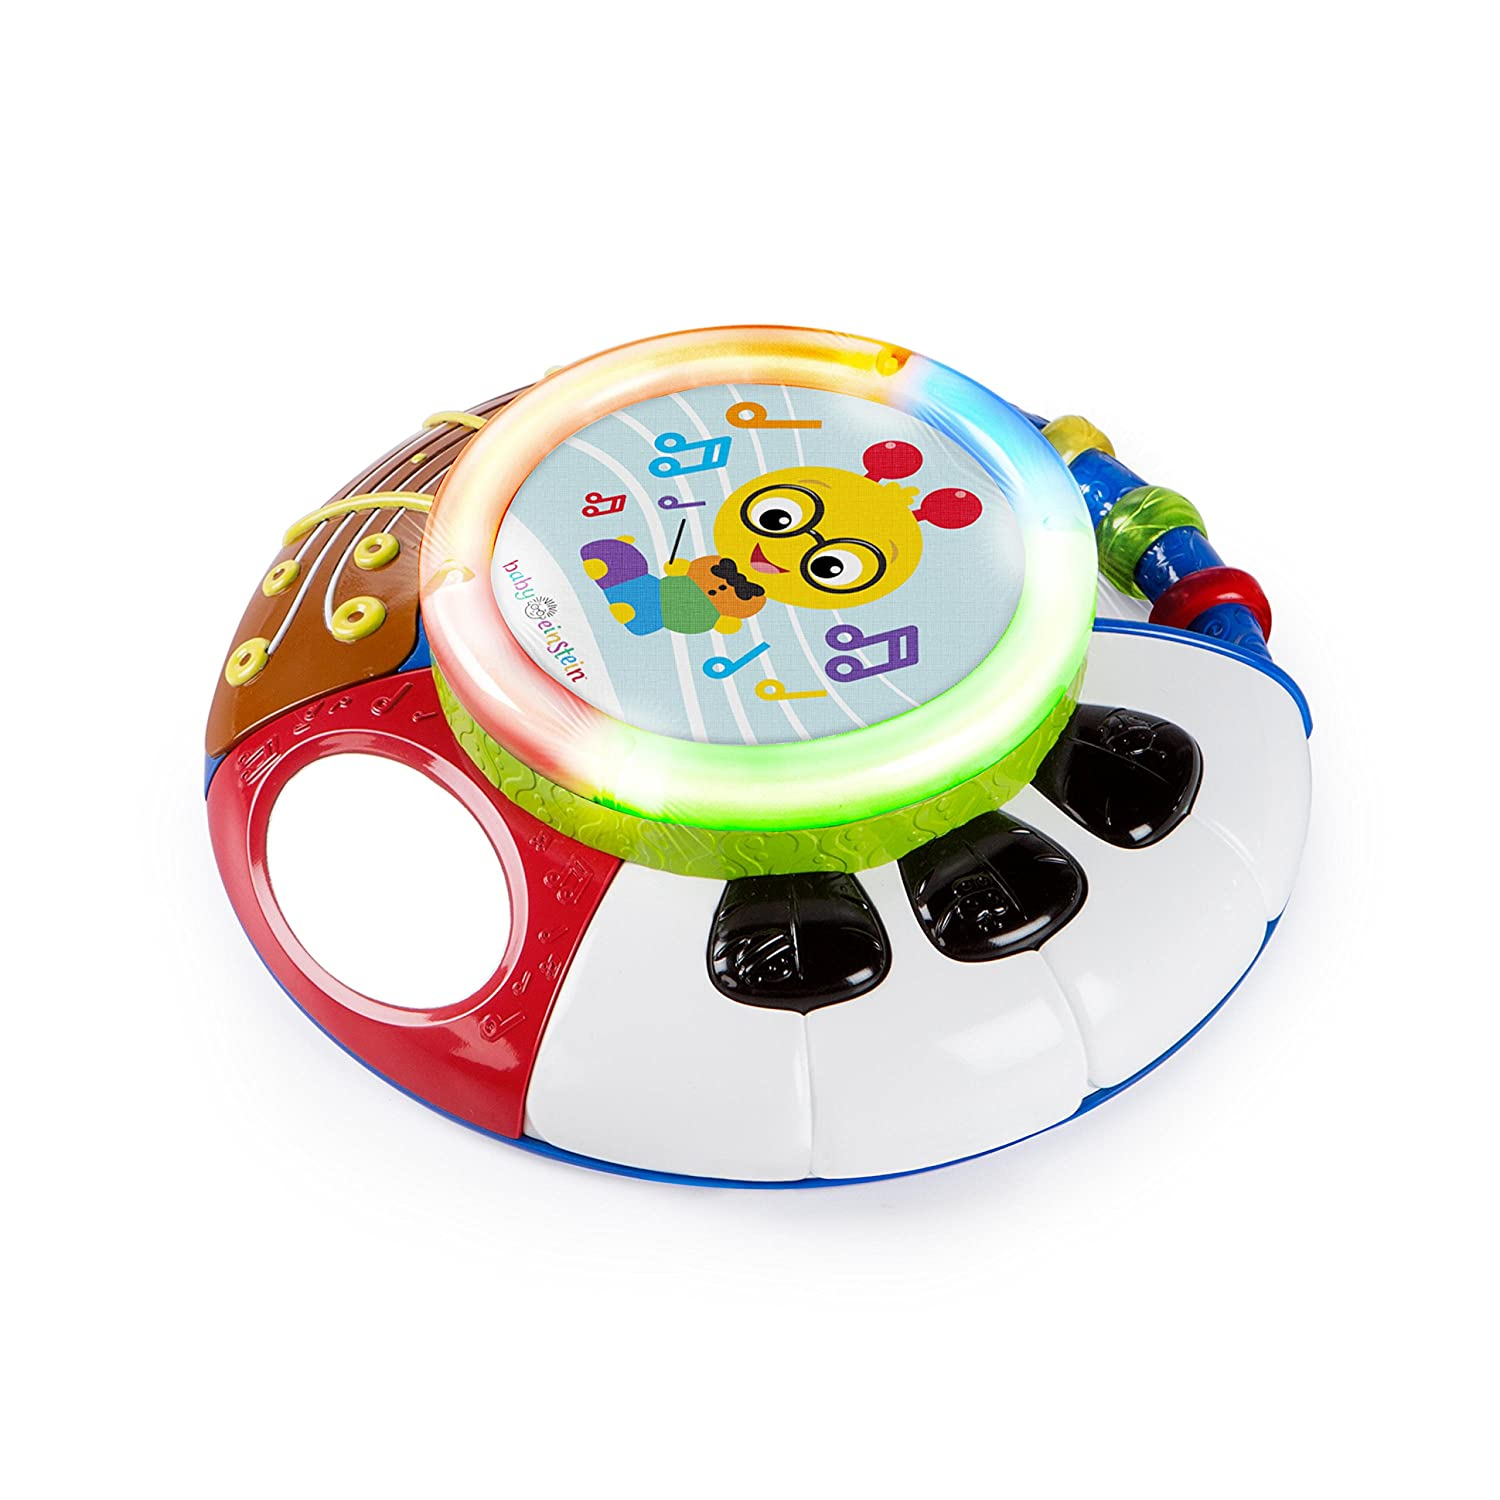 Baby Einstein Music Explorer Musical Toy with Lights andMelodies, Ages 3 months +